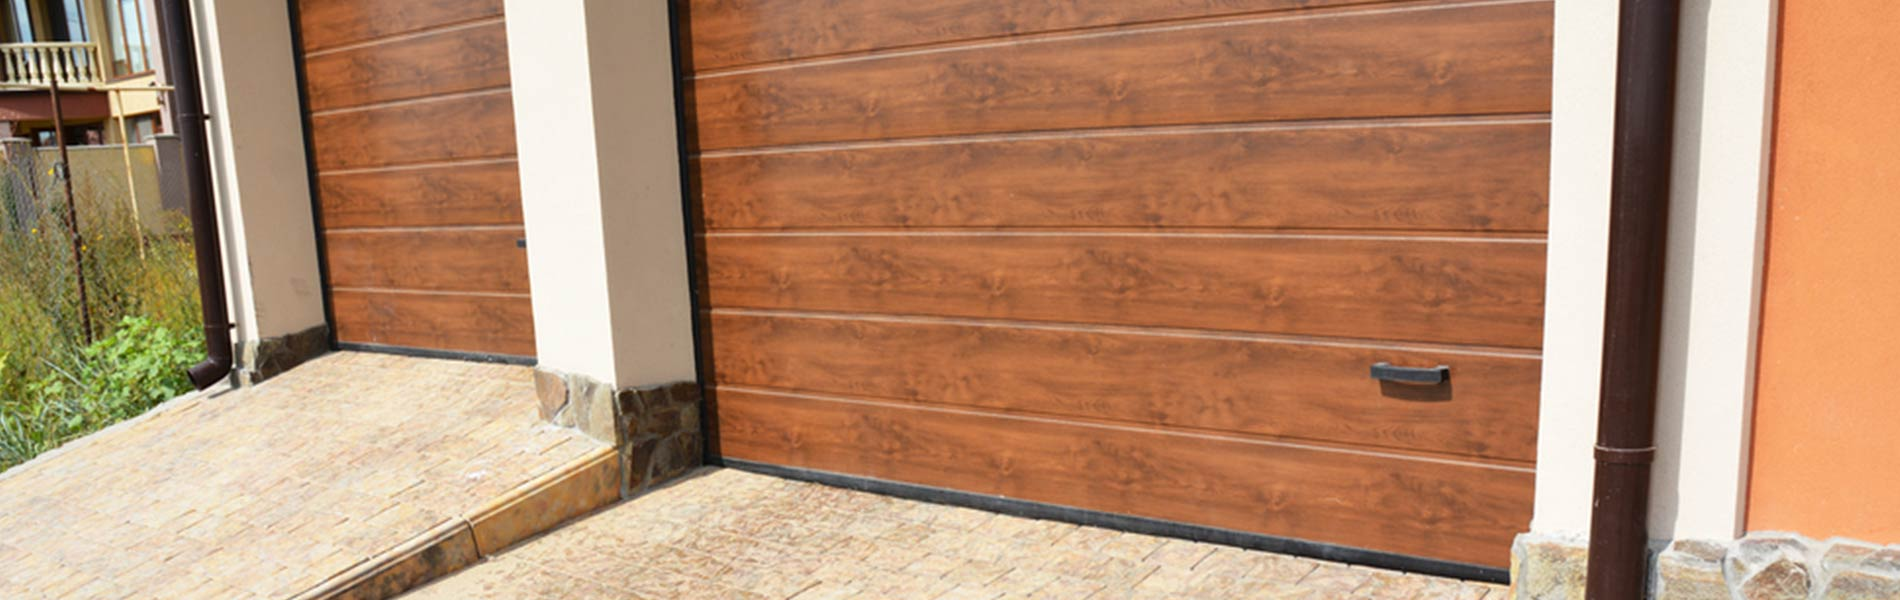 Express Garage Doors Lafayette, CO 303-653-9438